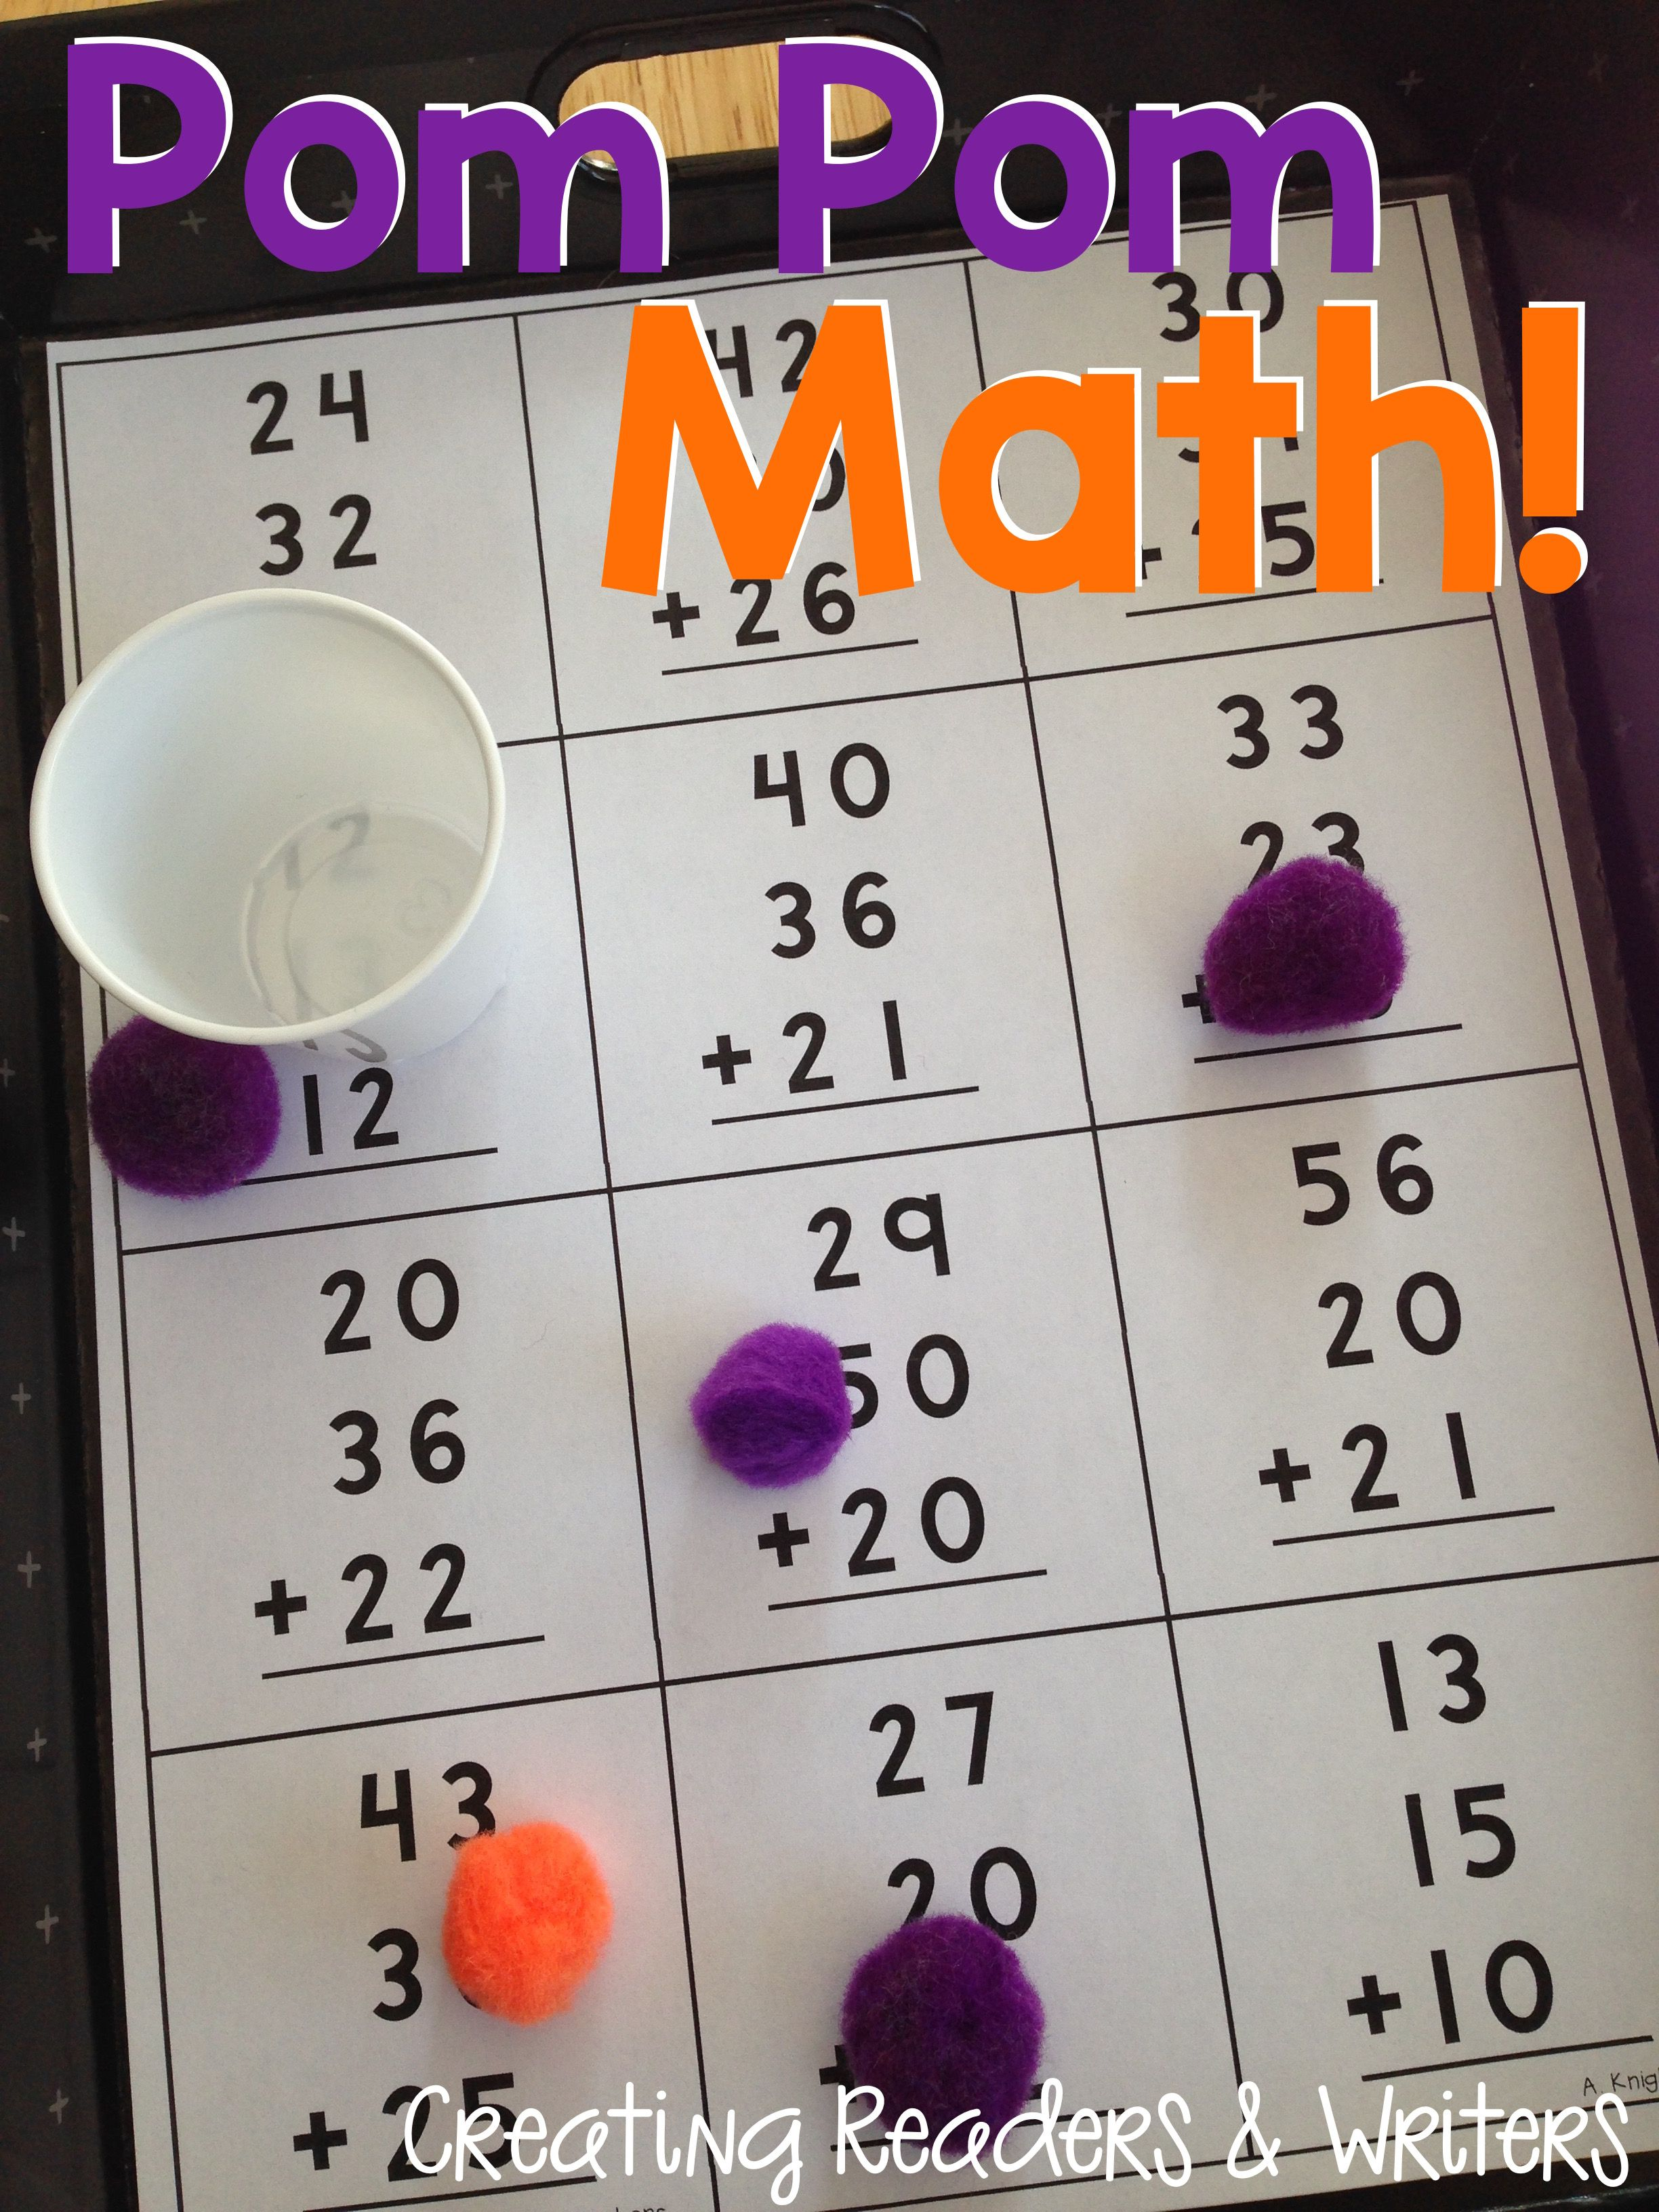 Pom Pom Math Games For 2nd Grade More Than 40 Games In This Set Super Simple To Make And Great For Math Centers Too 58 Pages Math Math Games Fun Math [ 3264 x 2448 Pixel ]